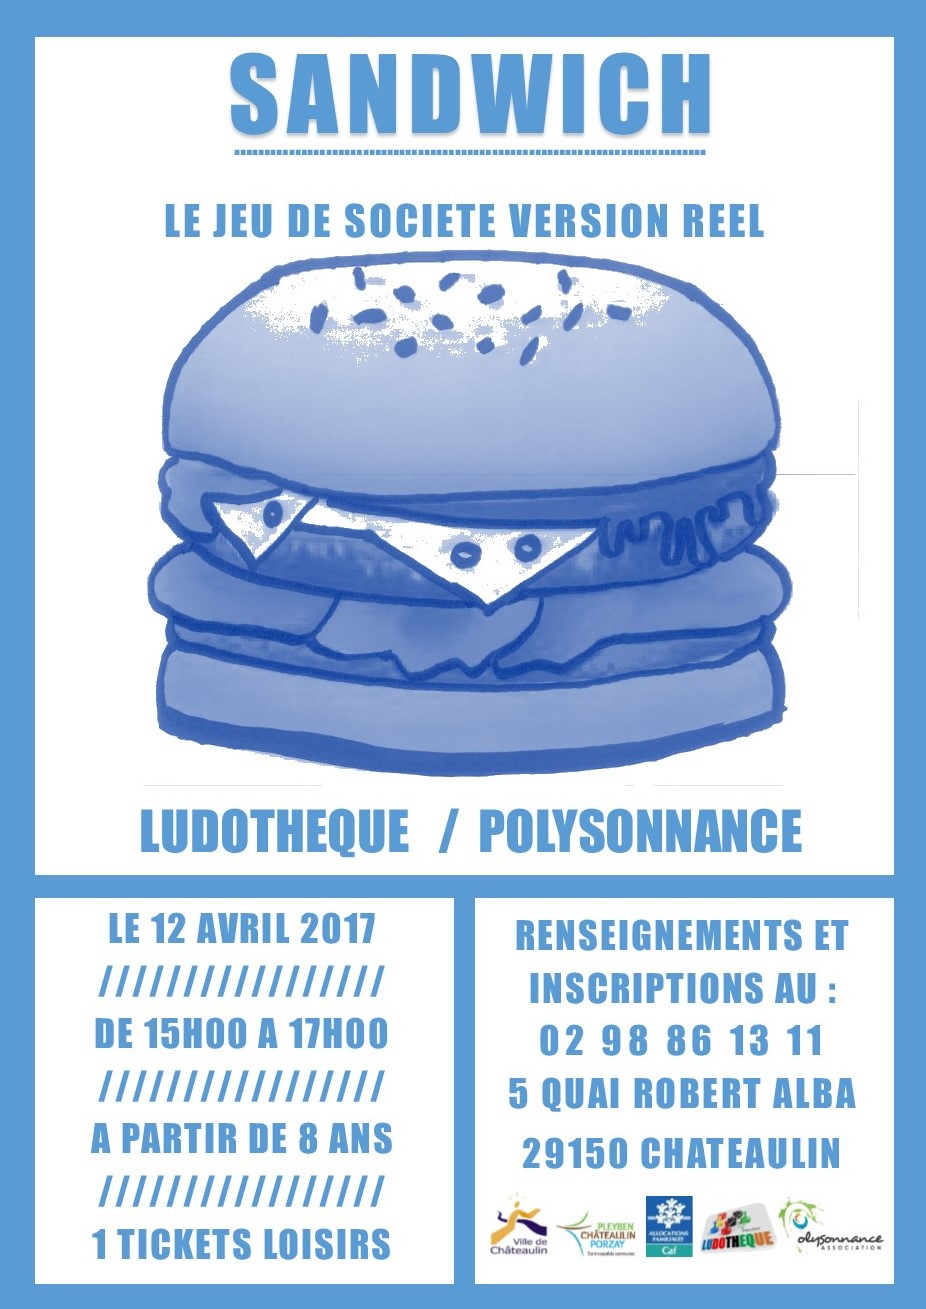 Le jeu Sandwich en version réelle